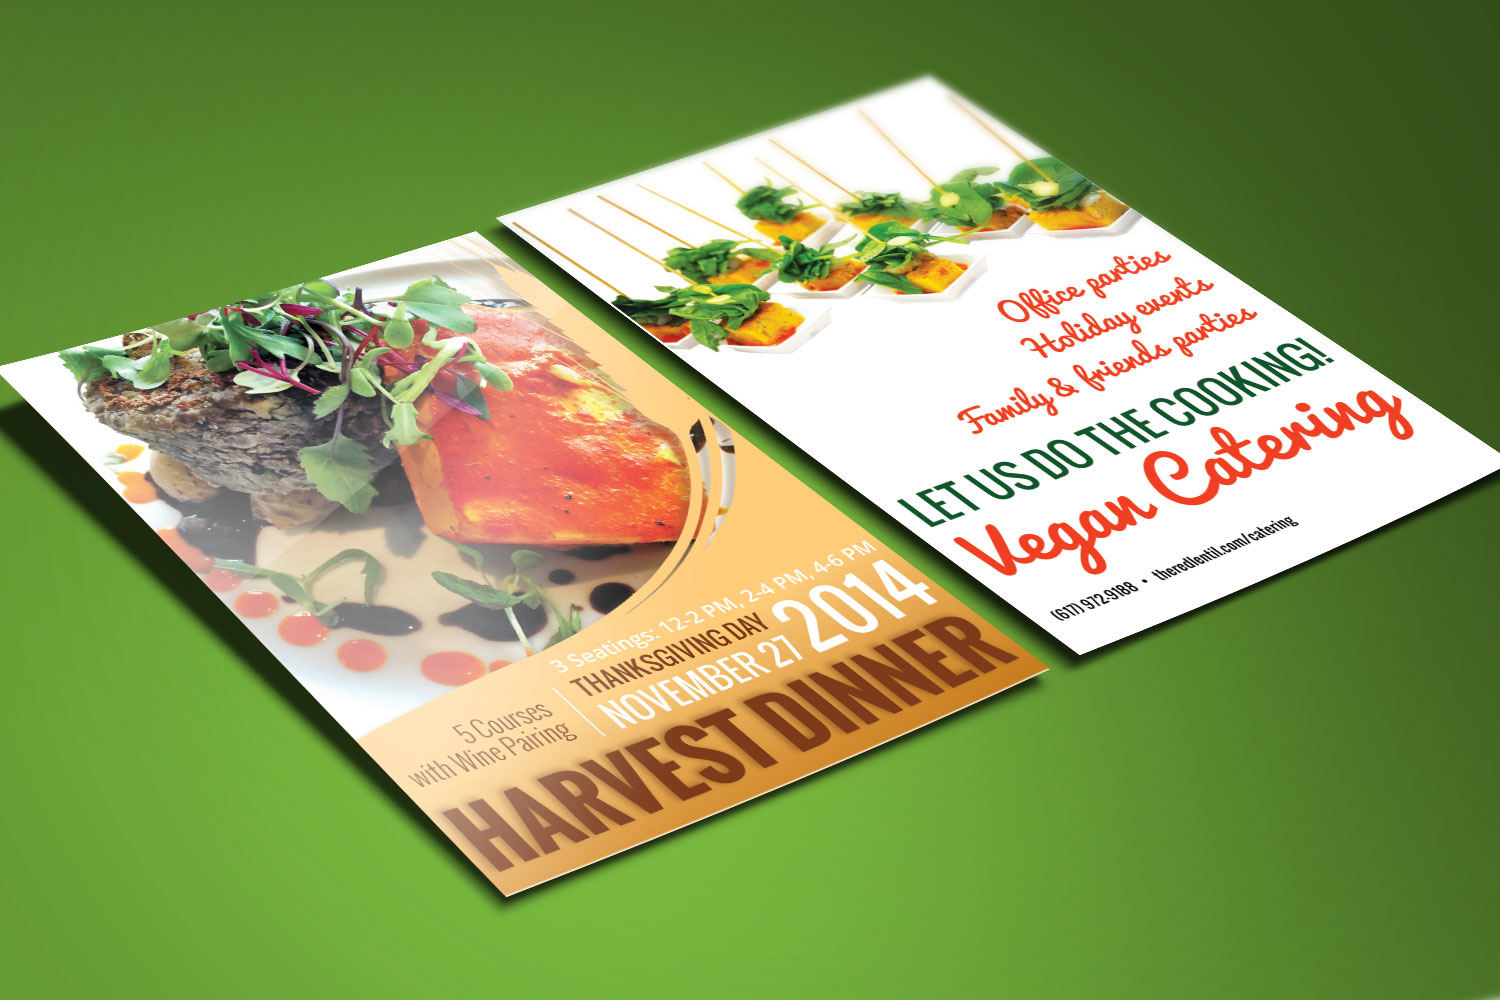 Vegan Restaurant Print Design